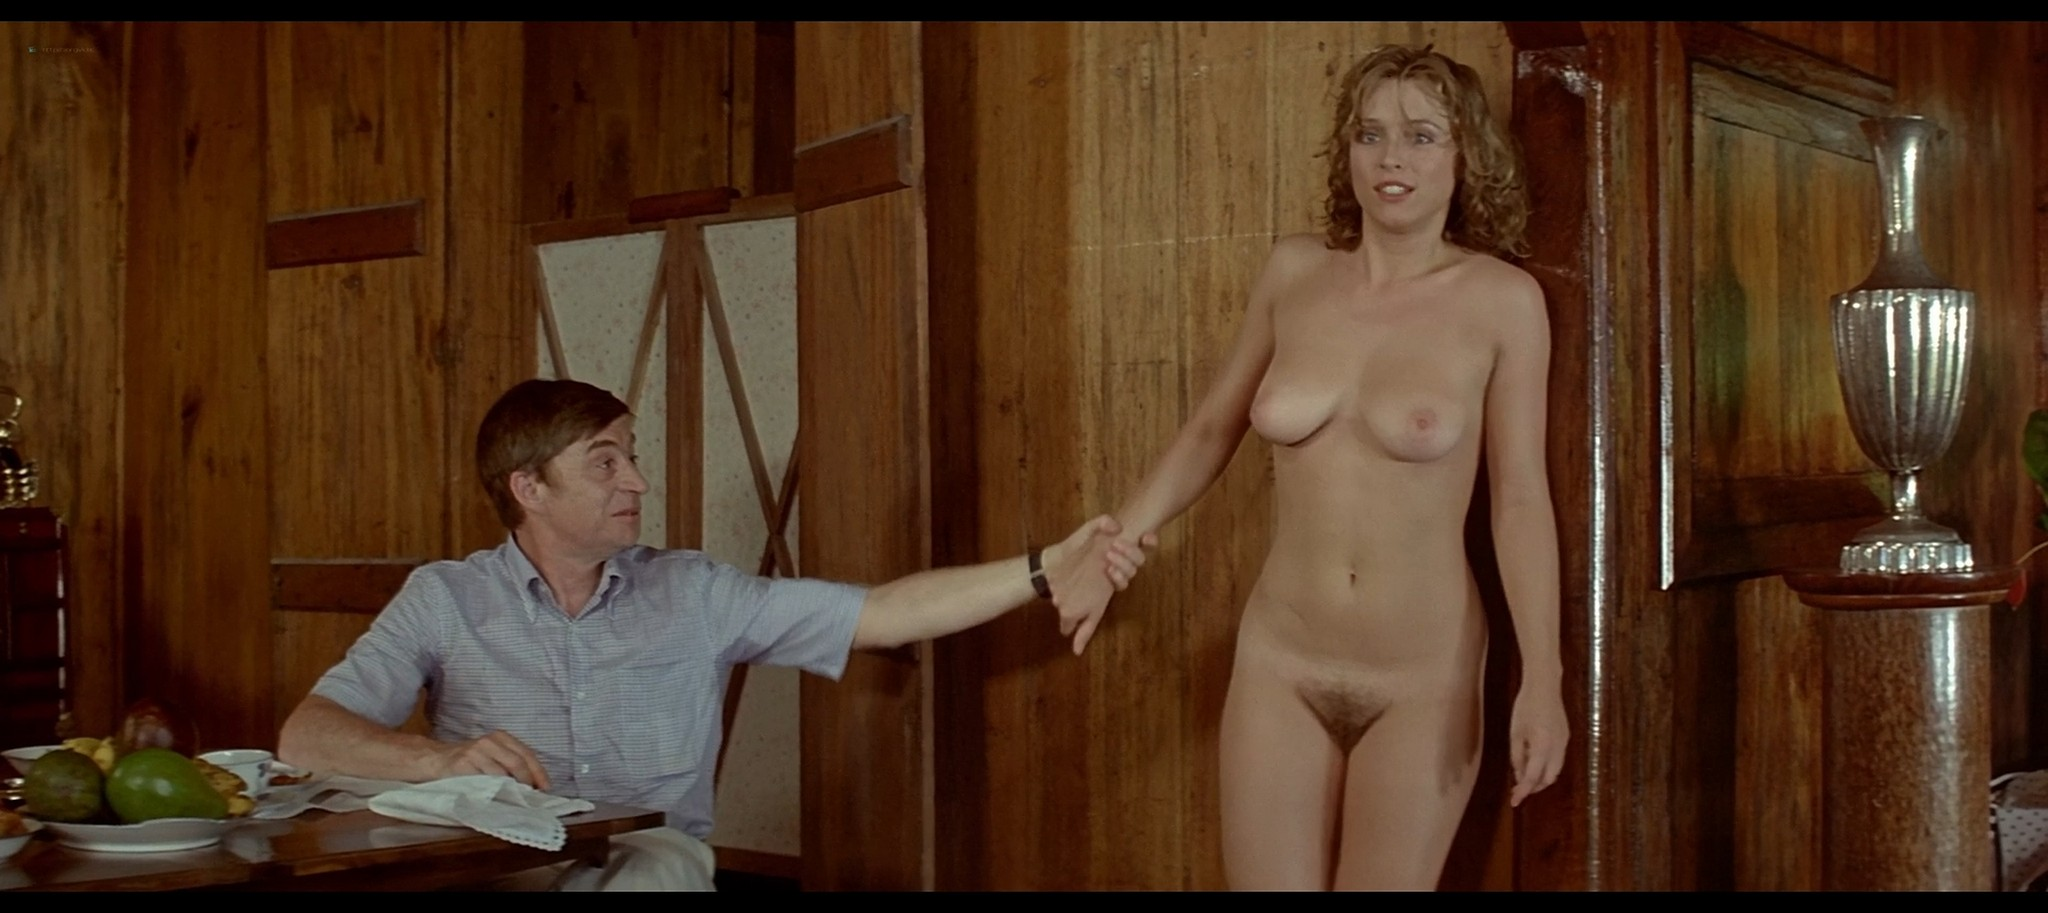 Sylvia Kristel nude full frontal Charlotte Alexandra and others nude sex Good bye Emmanuelle 1977 1080p BluRay 11